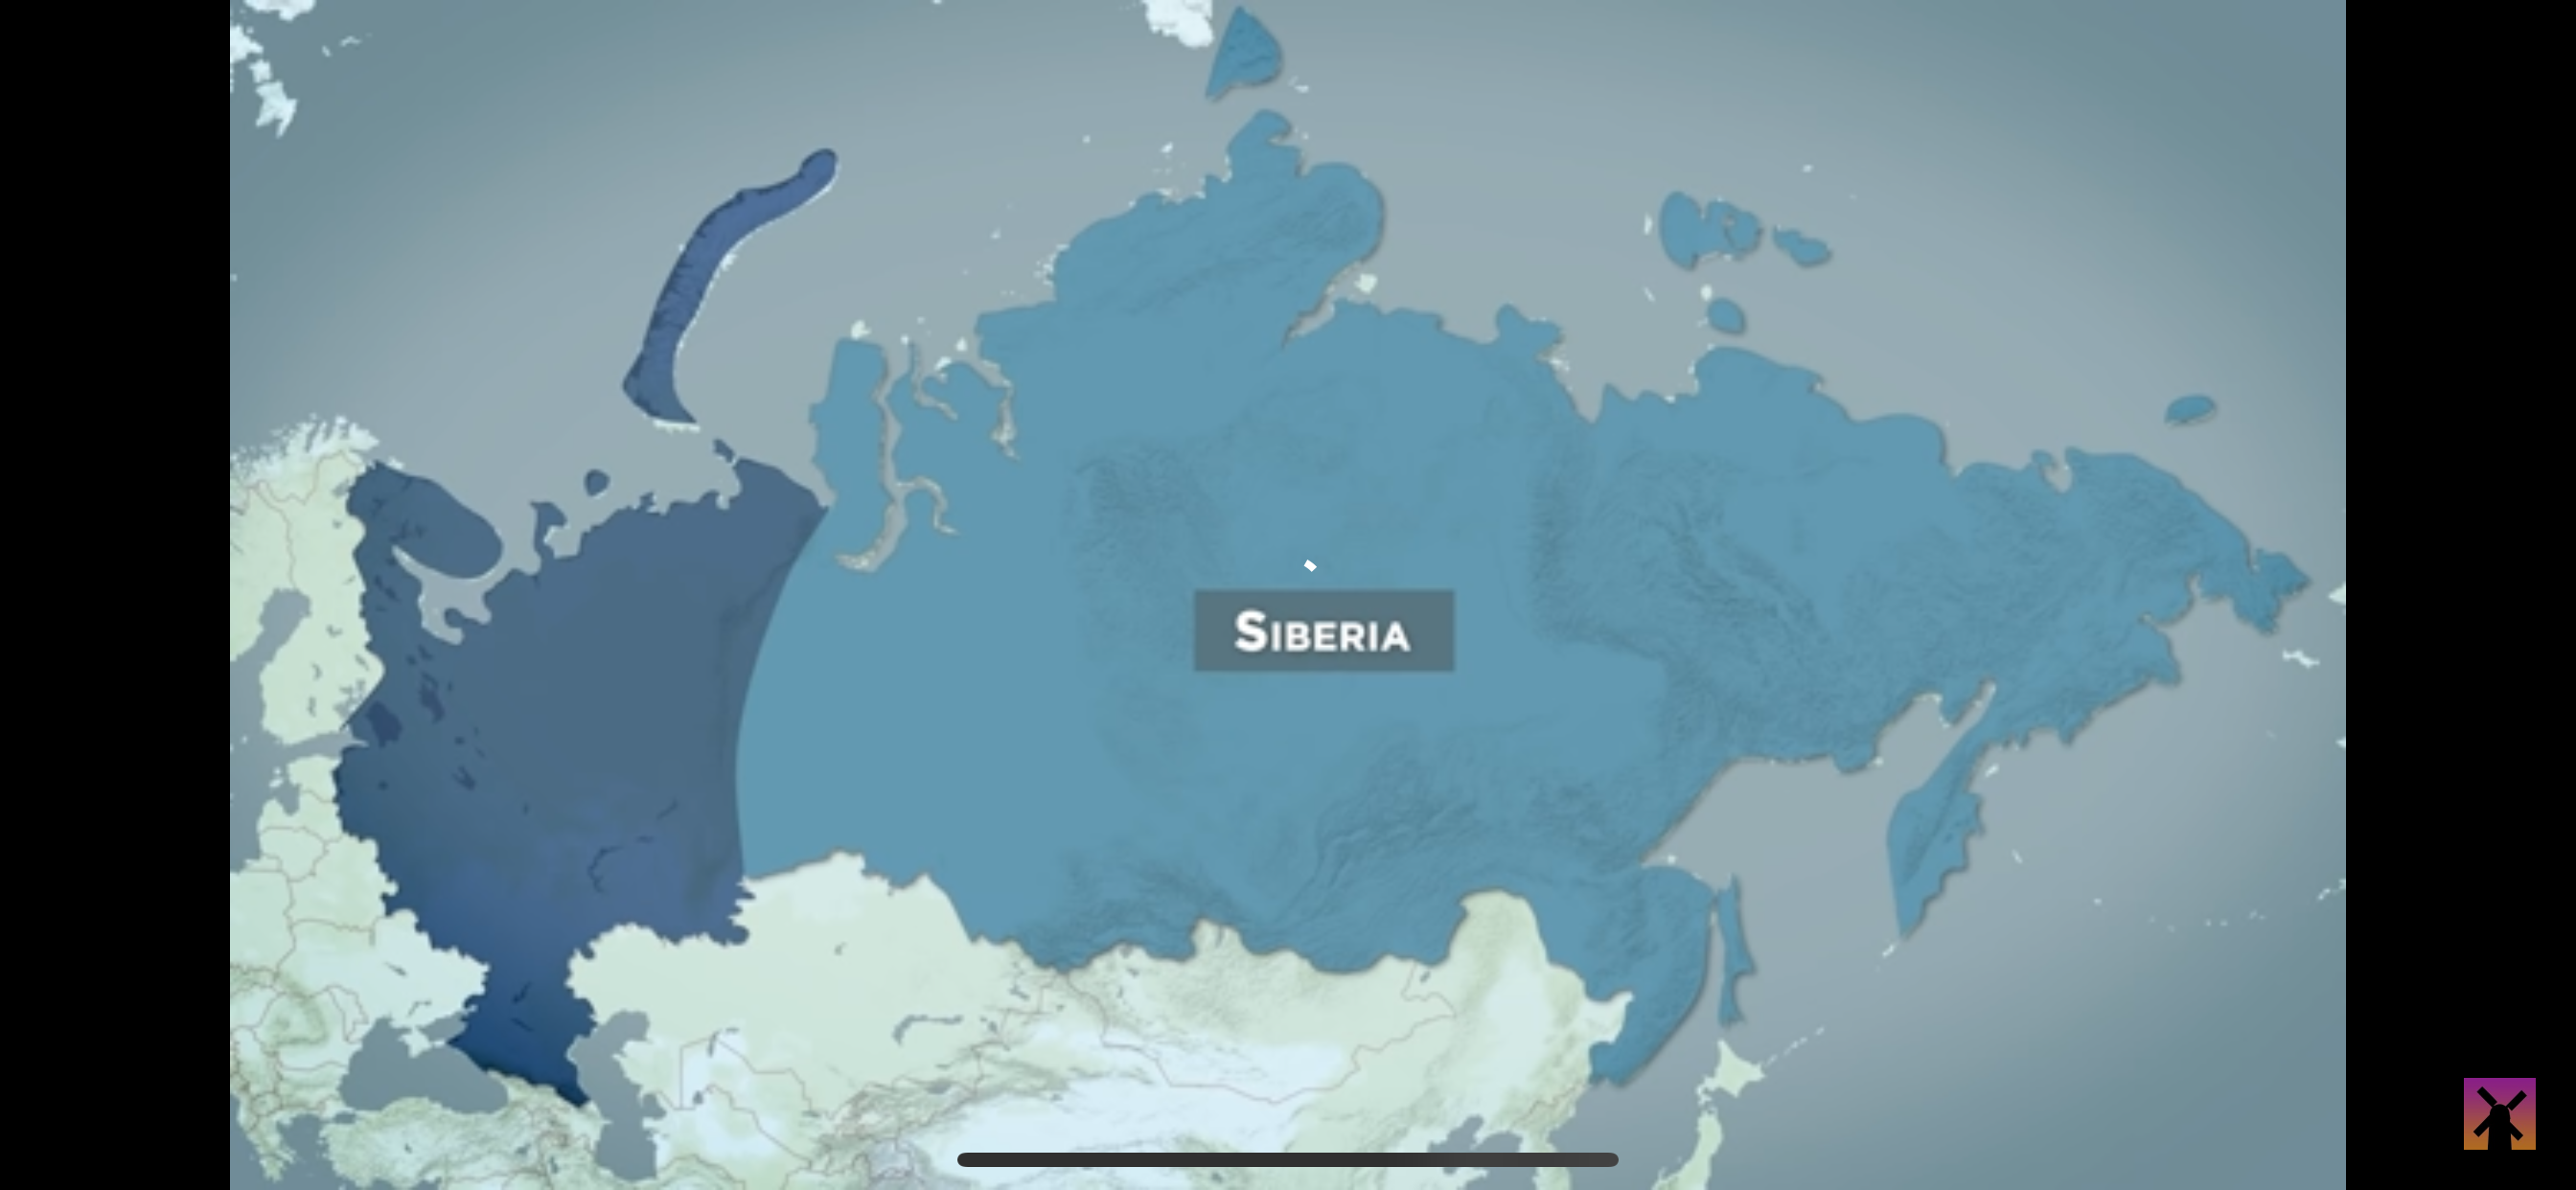 How Russia will benefit from Global Warming